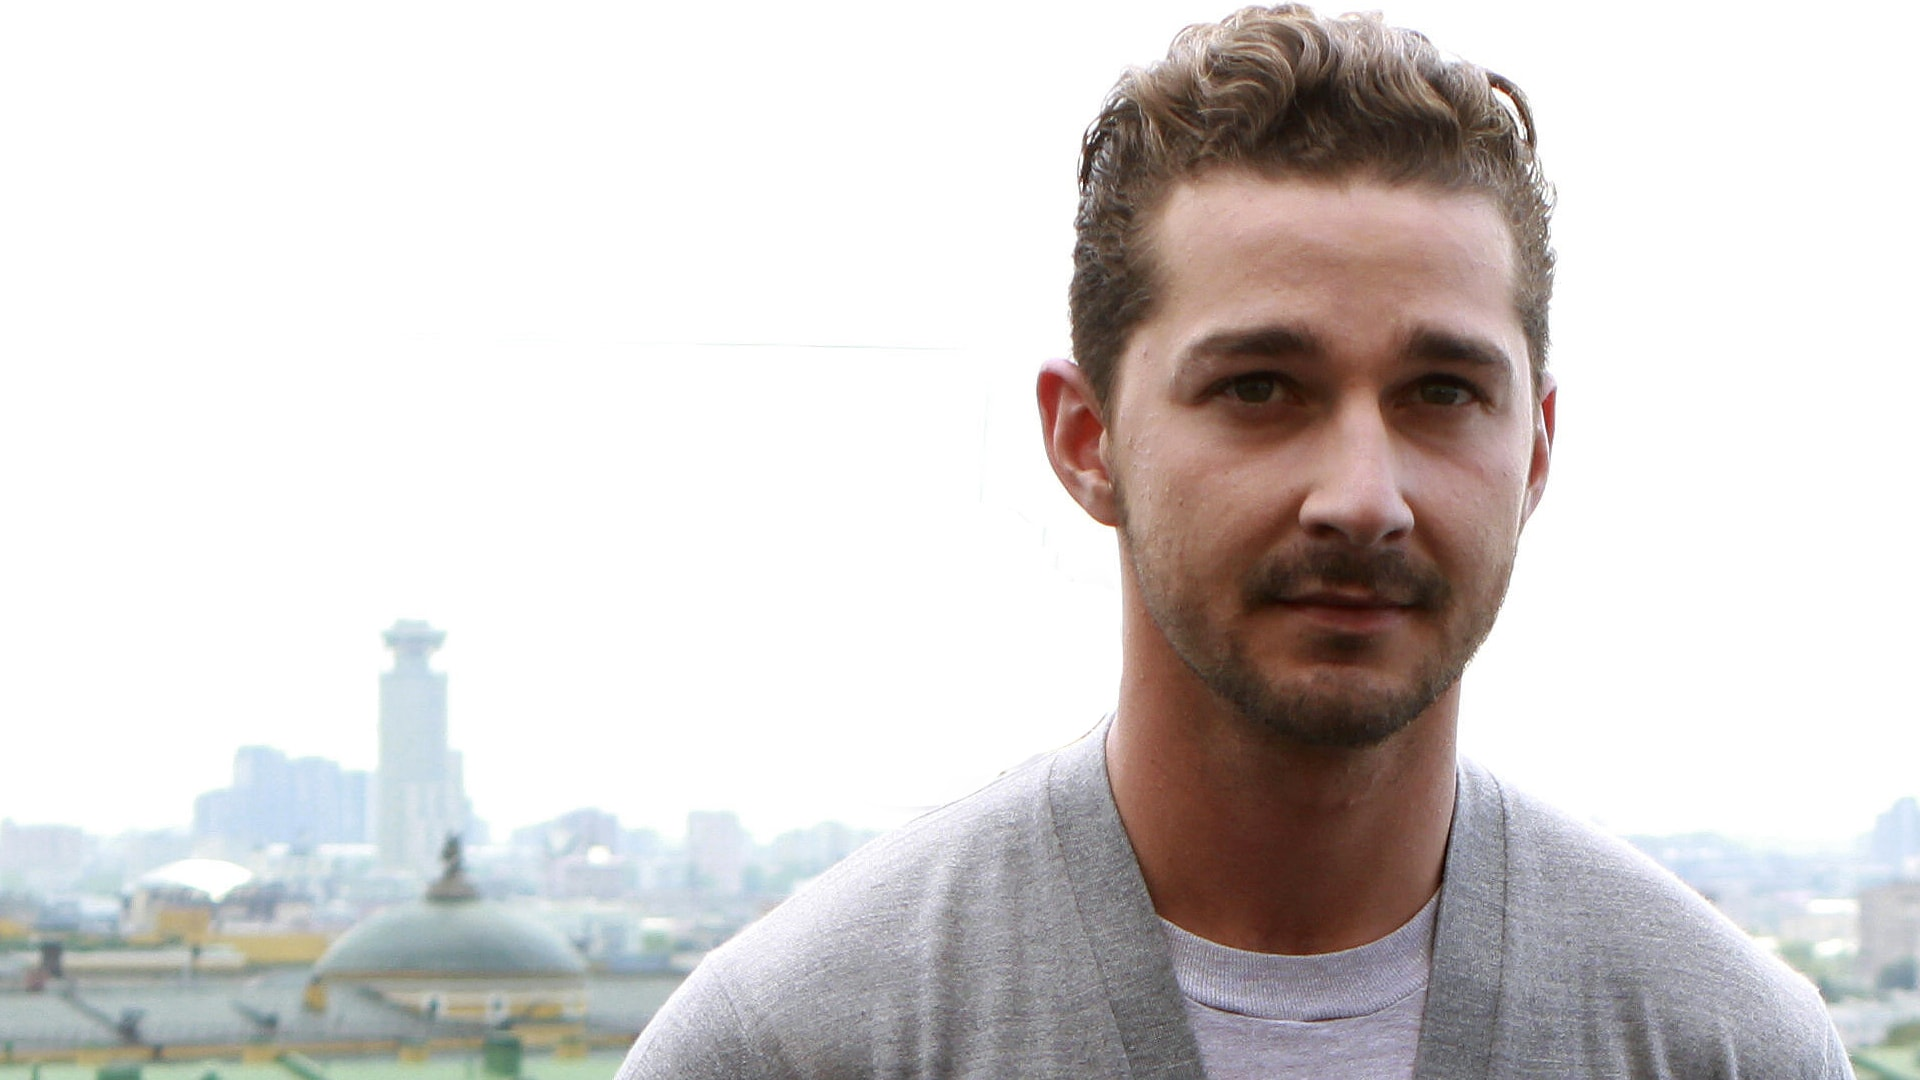 Shia Labeouf Wallpapers hd